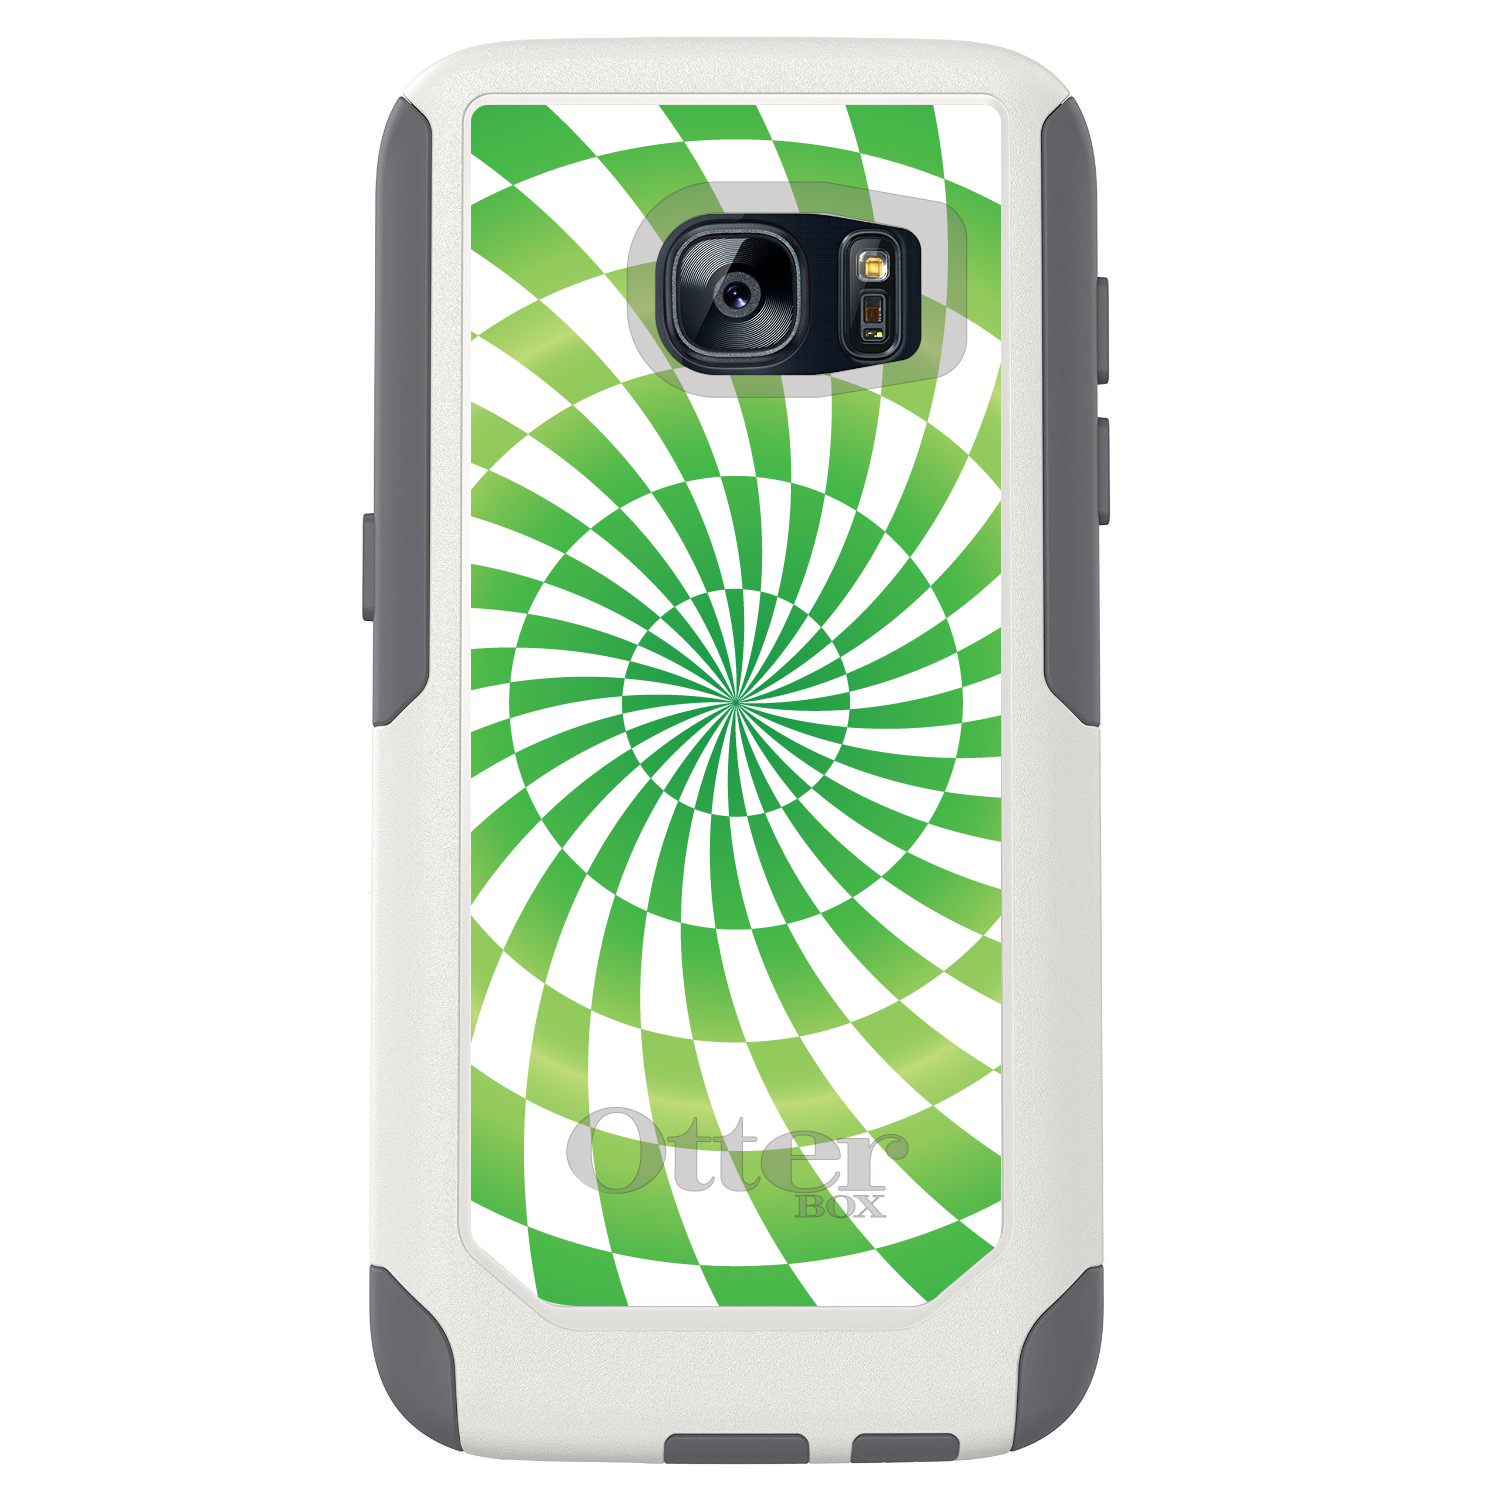 DistinctInk™ Custom White OtterBox Commuter Series Case for Samsung Galaxy S7 - Green White Swirl Geometric